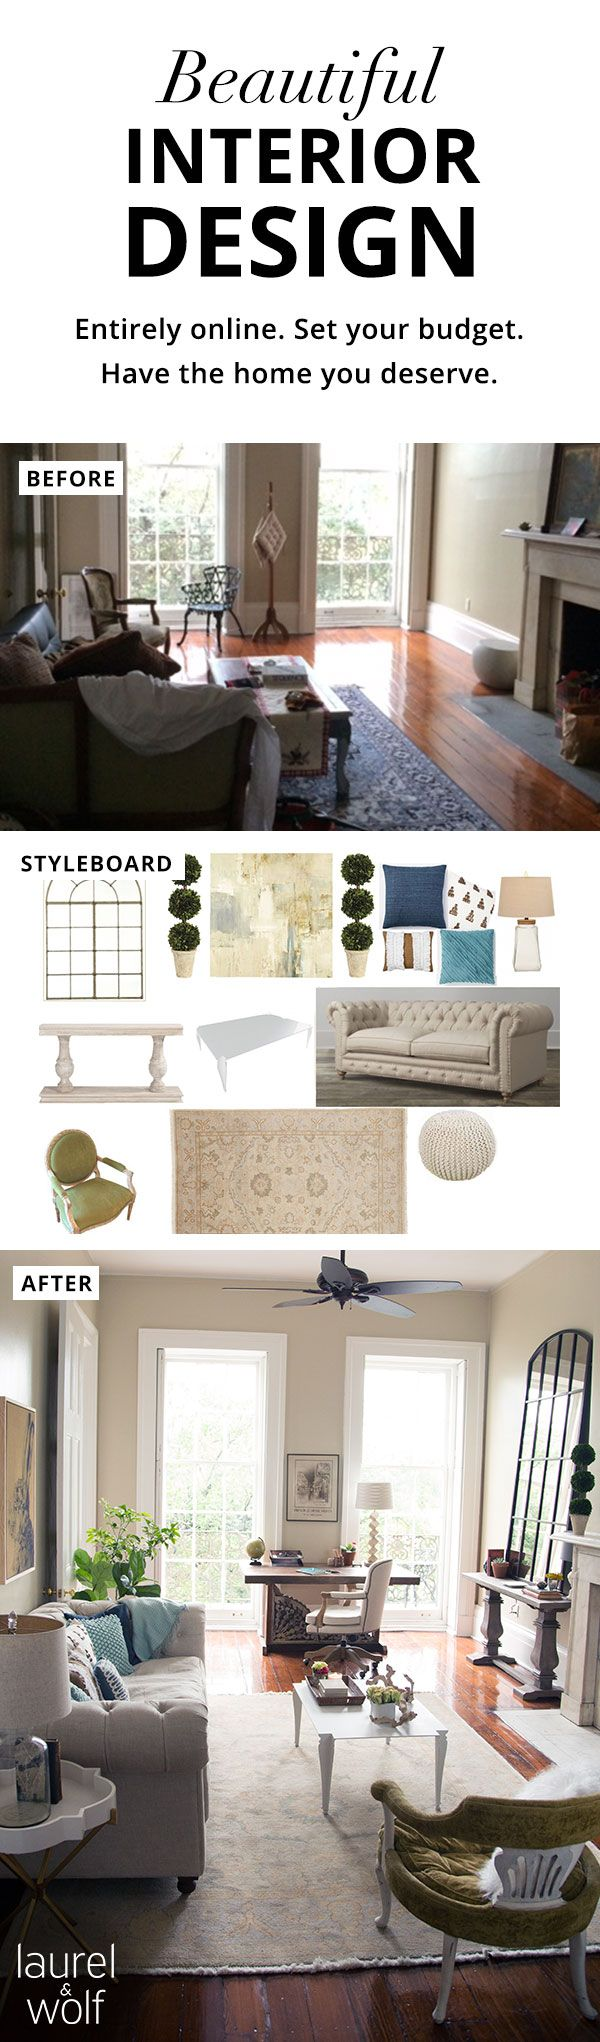 Did You Know Can Get Beautiful Interior Design Entirely Online For 1 Flat Fee